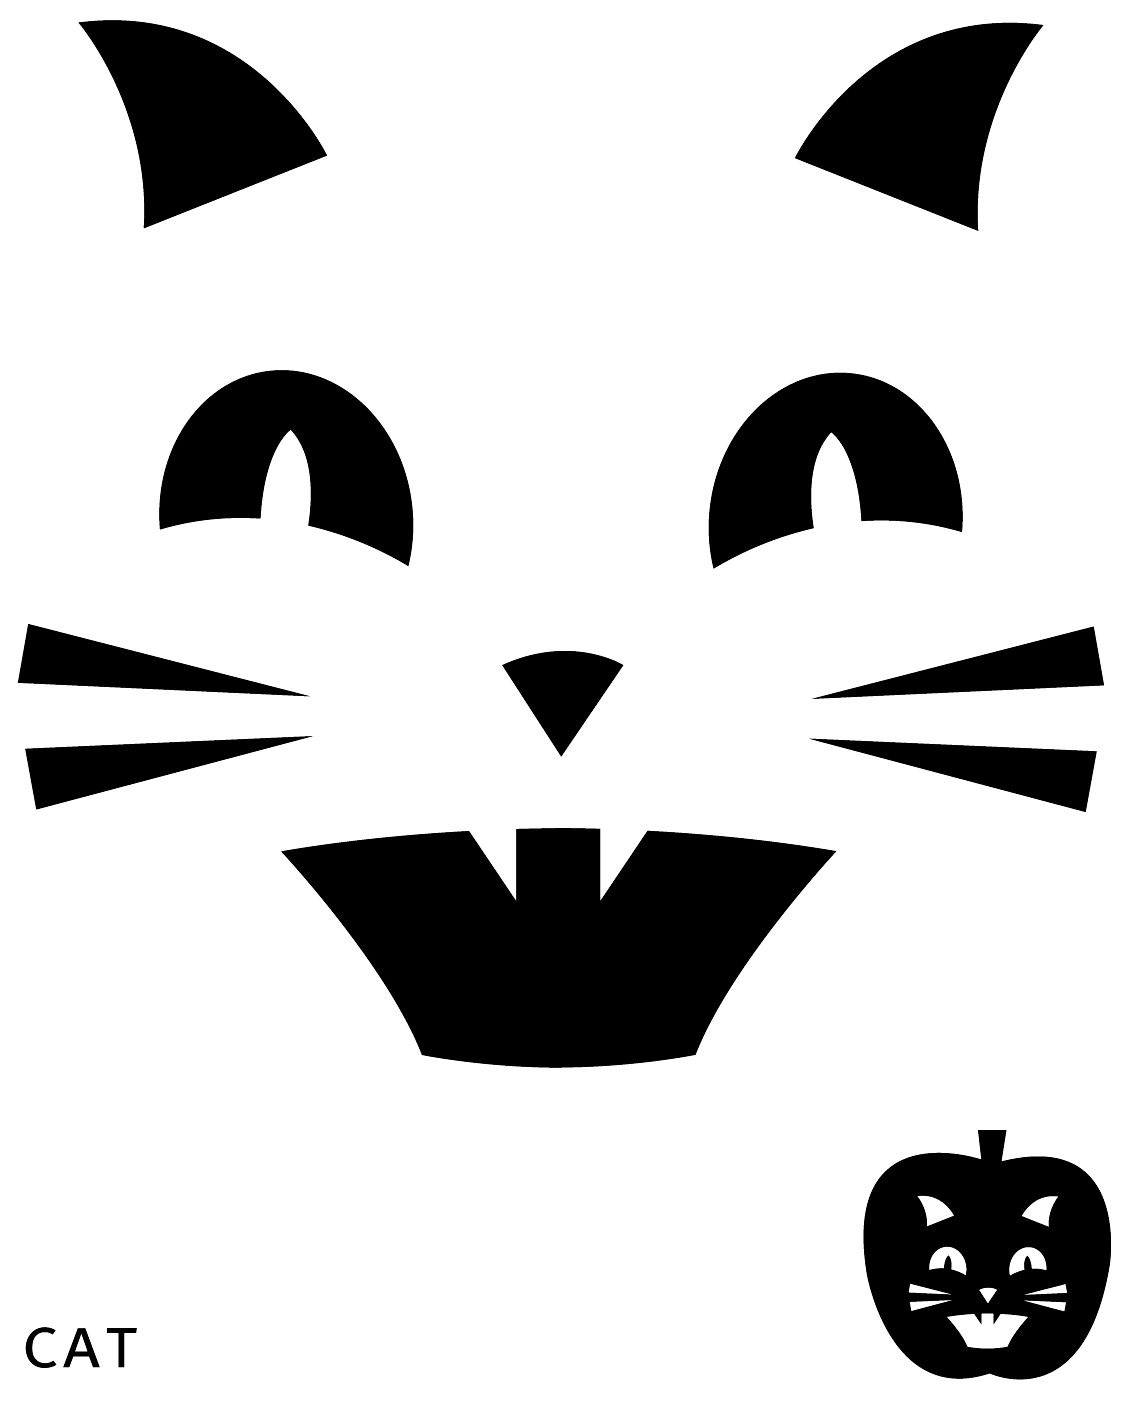 Cat Pumpkin Carving Template | Halloween | Pumpkin Carving Patterns - Free Pumpkin Printable Carving Patterns